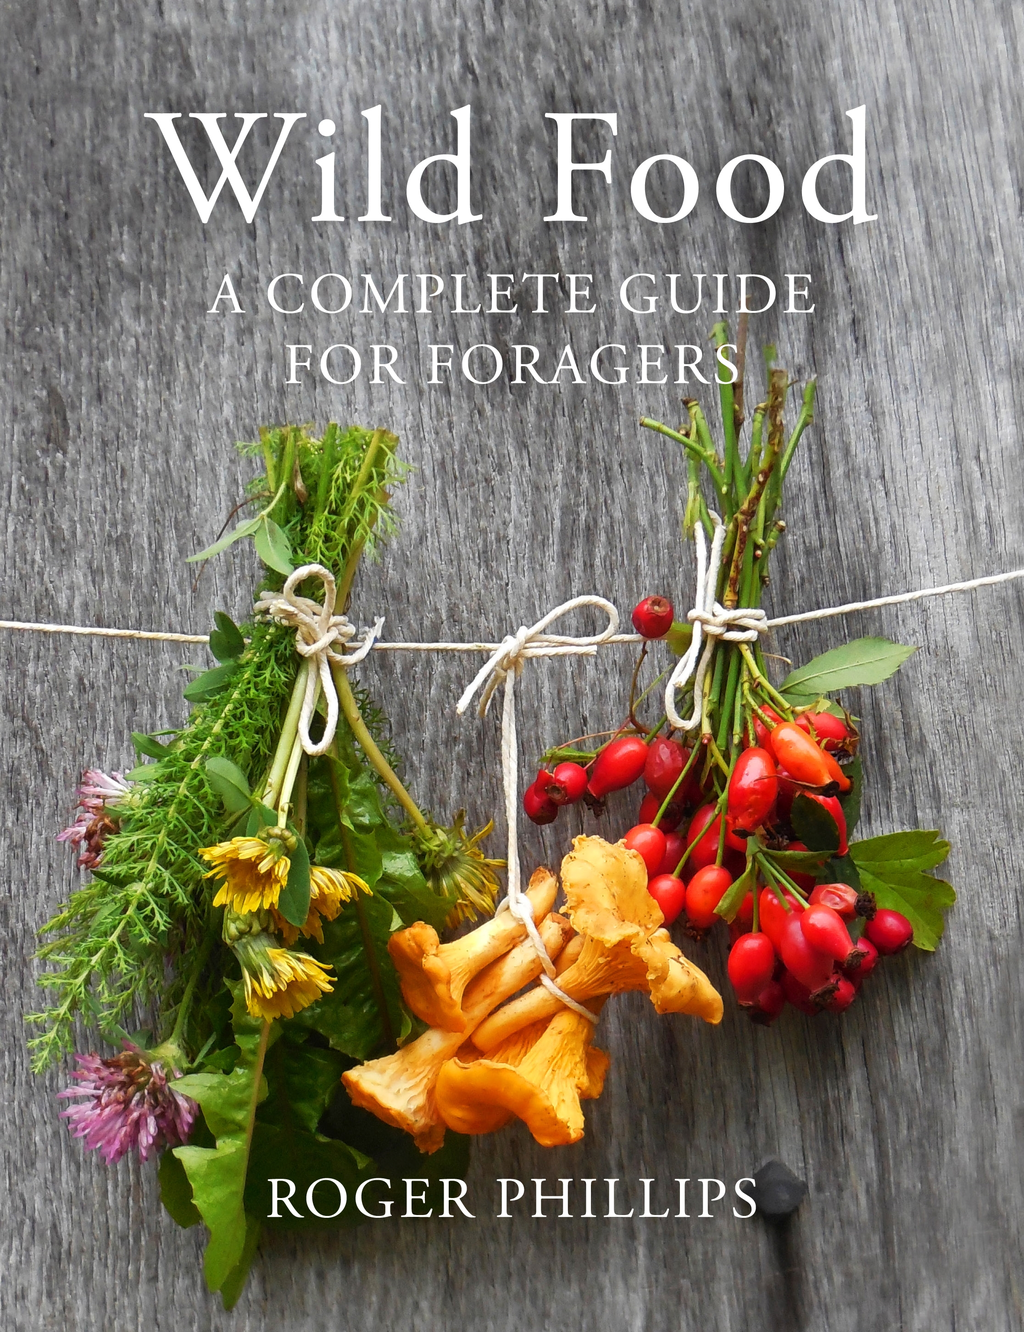 Wild Food A Complete Guide for Foragers